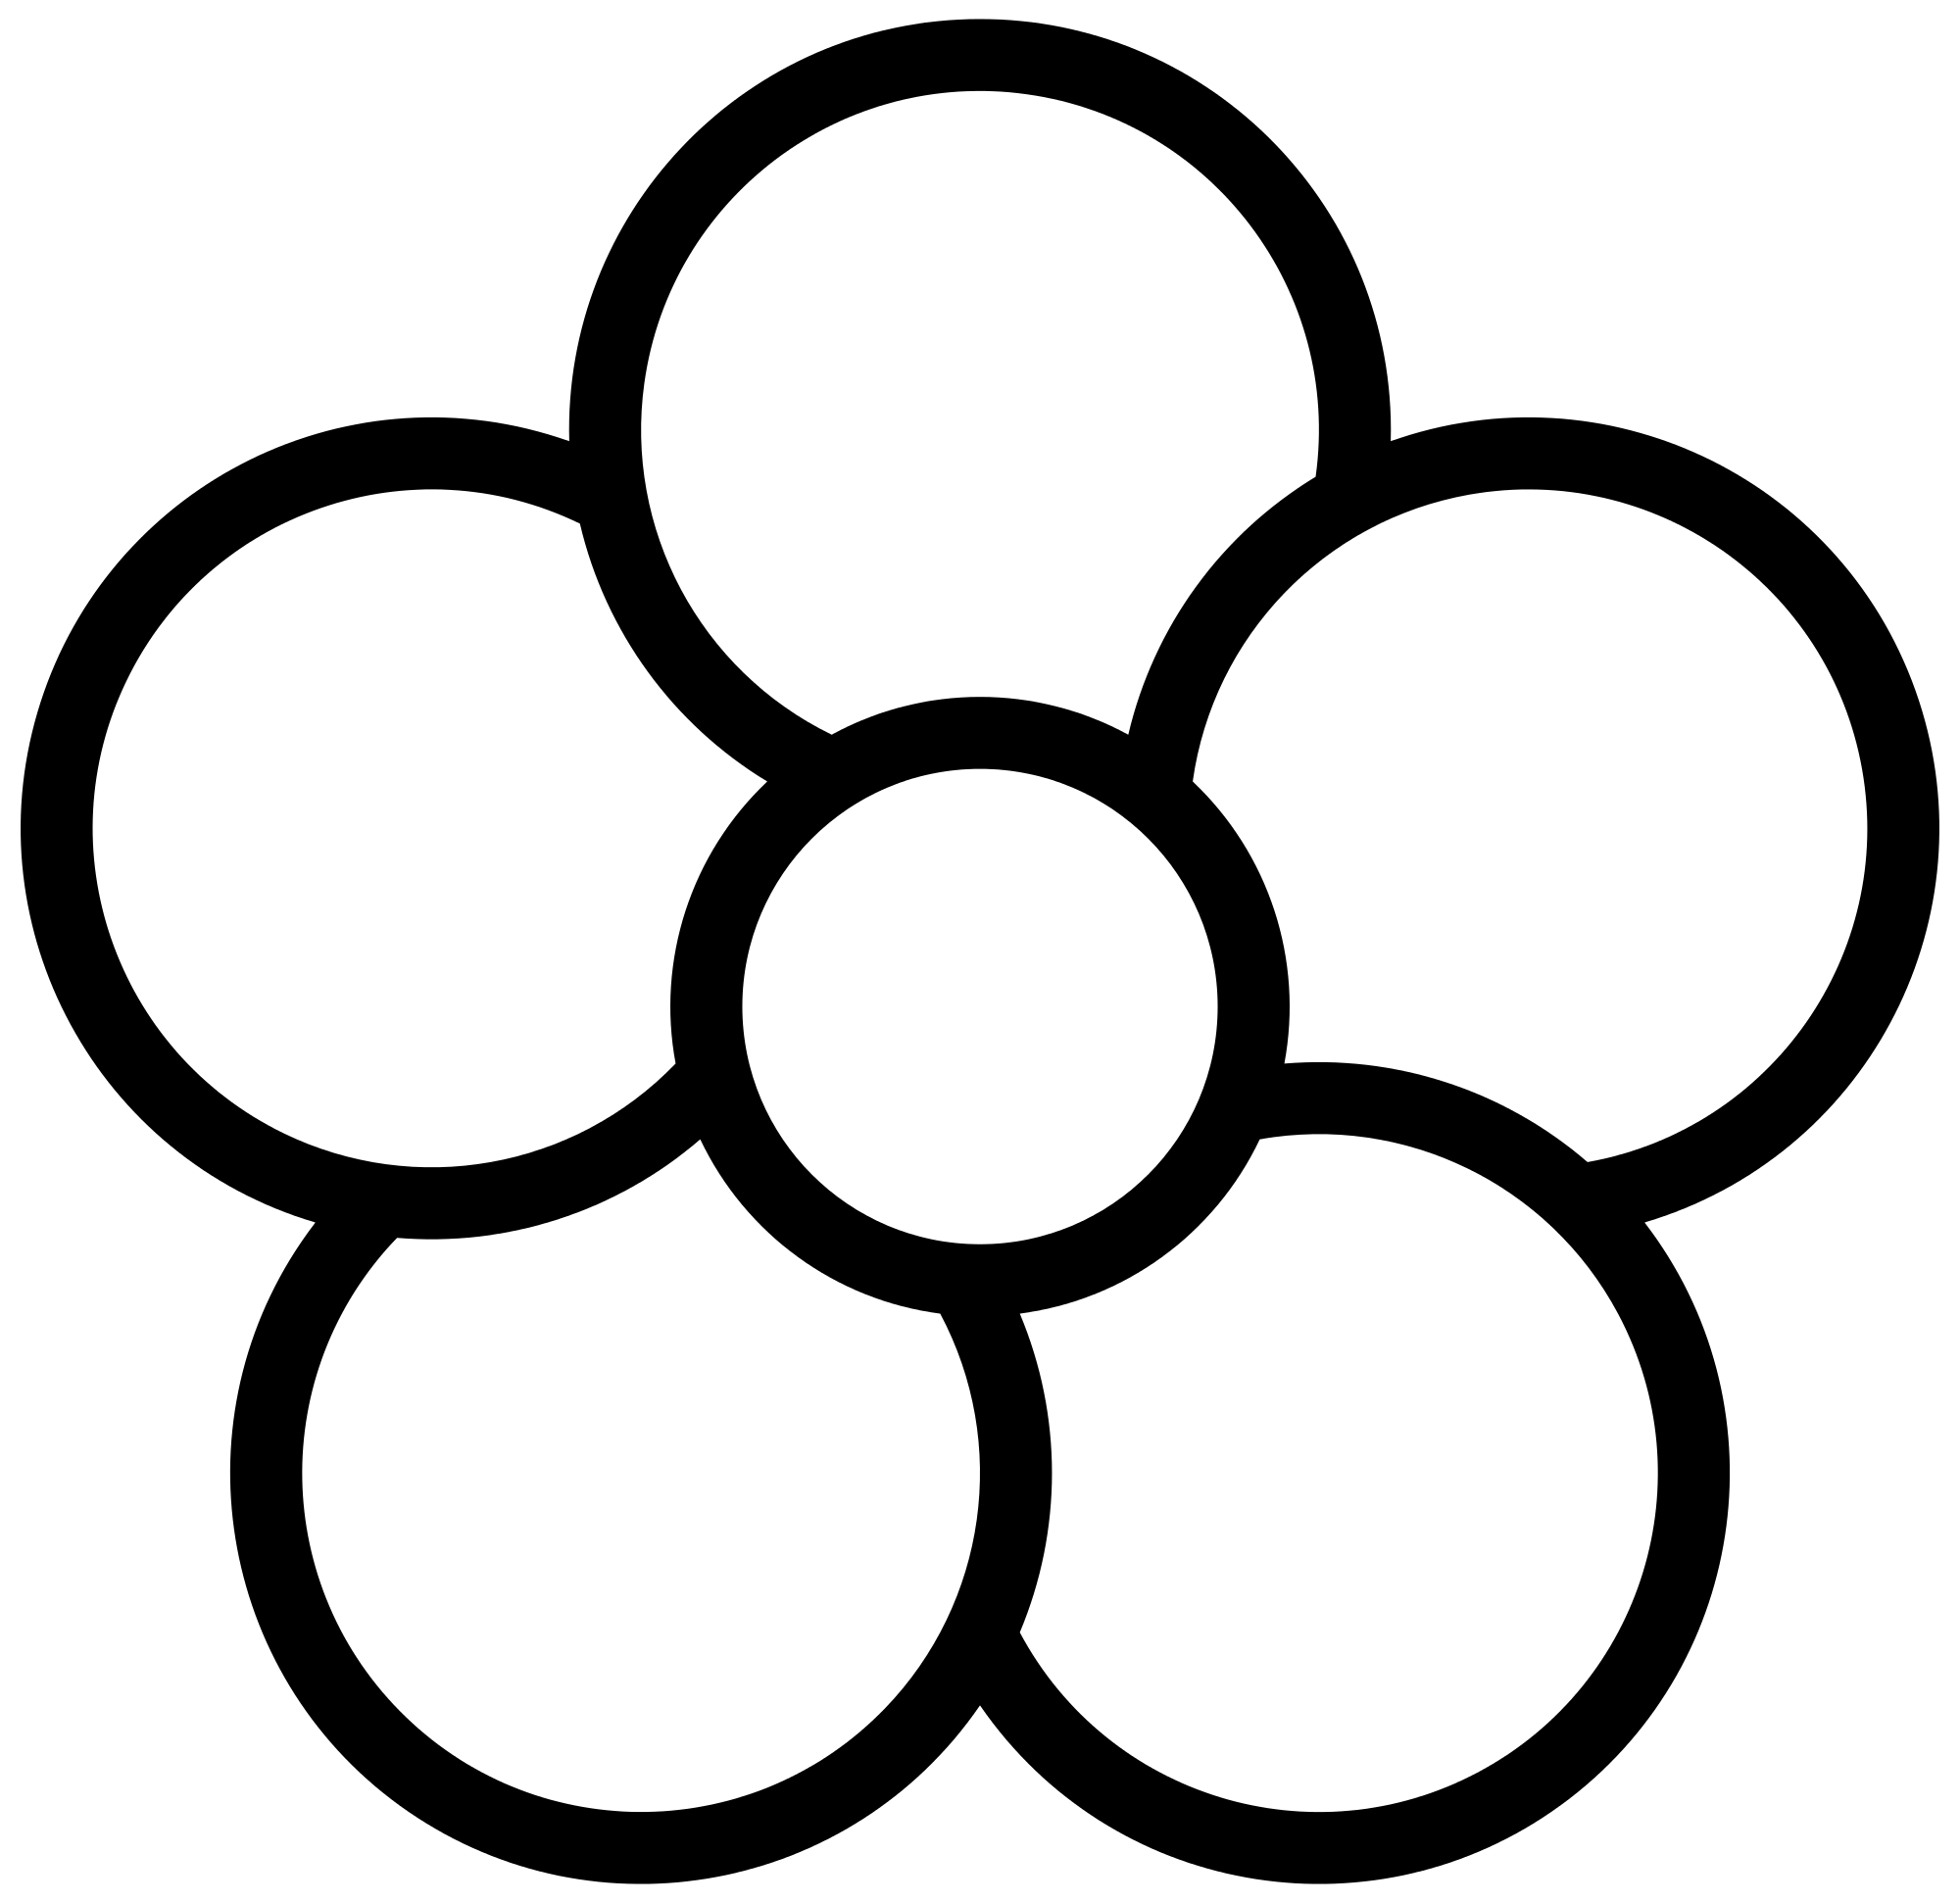 Flower With 5 Petals Clipart.